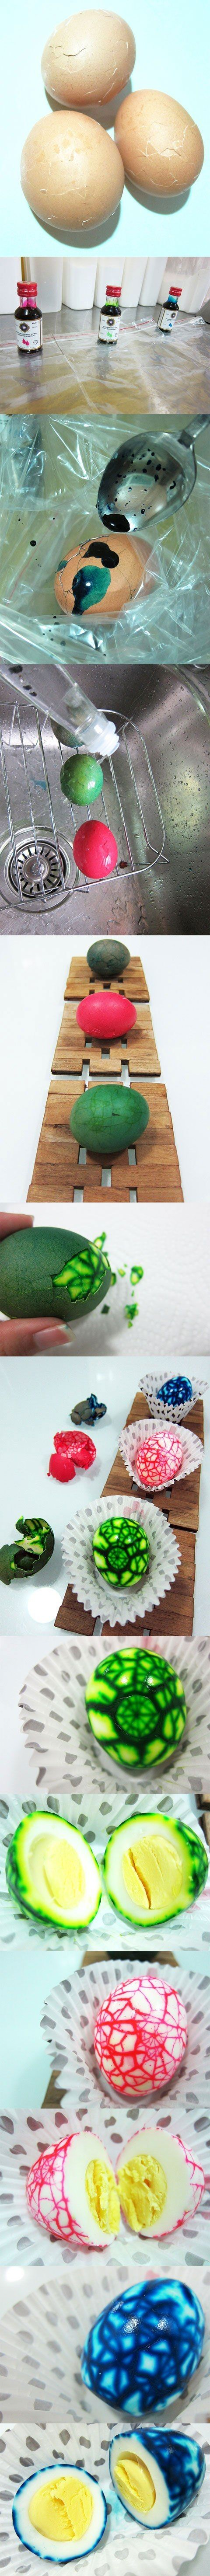 easter eggs just got coolerFood Colors, Boiled Eggs, Dinosaurs Eggs, Ties Dyes, Cool Ideas, Easter Eggs, Kids, Deviled Eggs, Easter Ideas